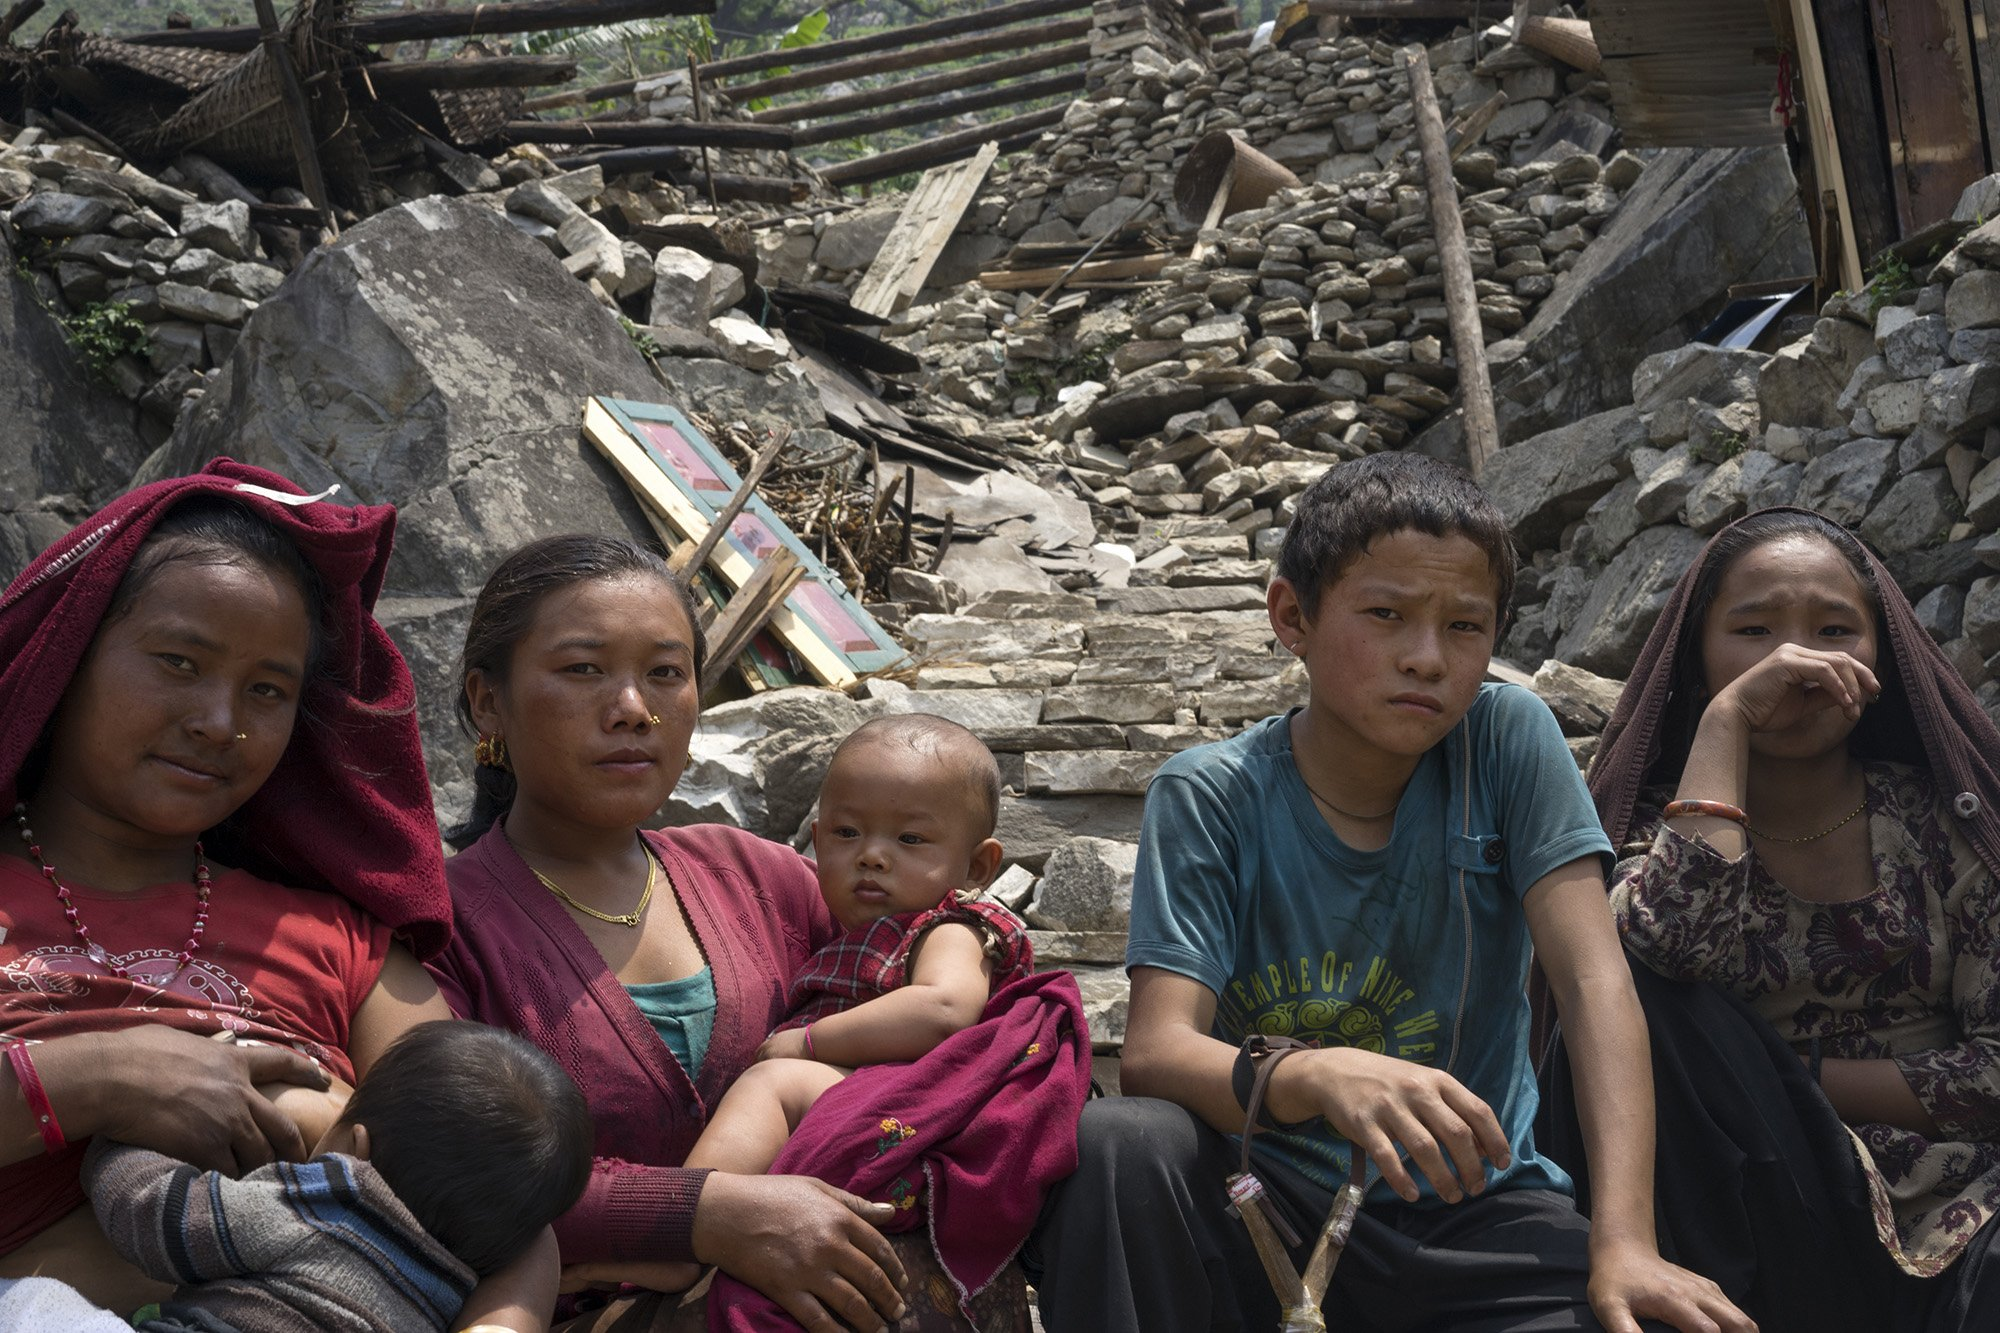 An MSF team visits heavily affected villages in the mountains to the north-west of Kathmandu . Photo: Corinne Baker